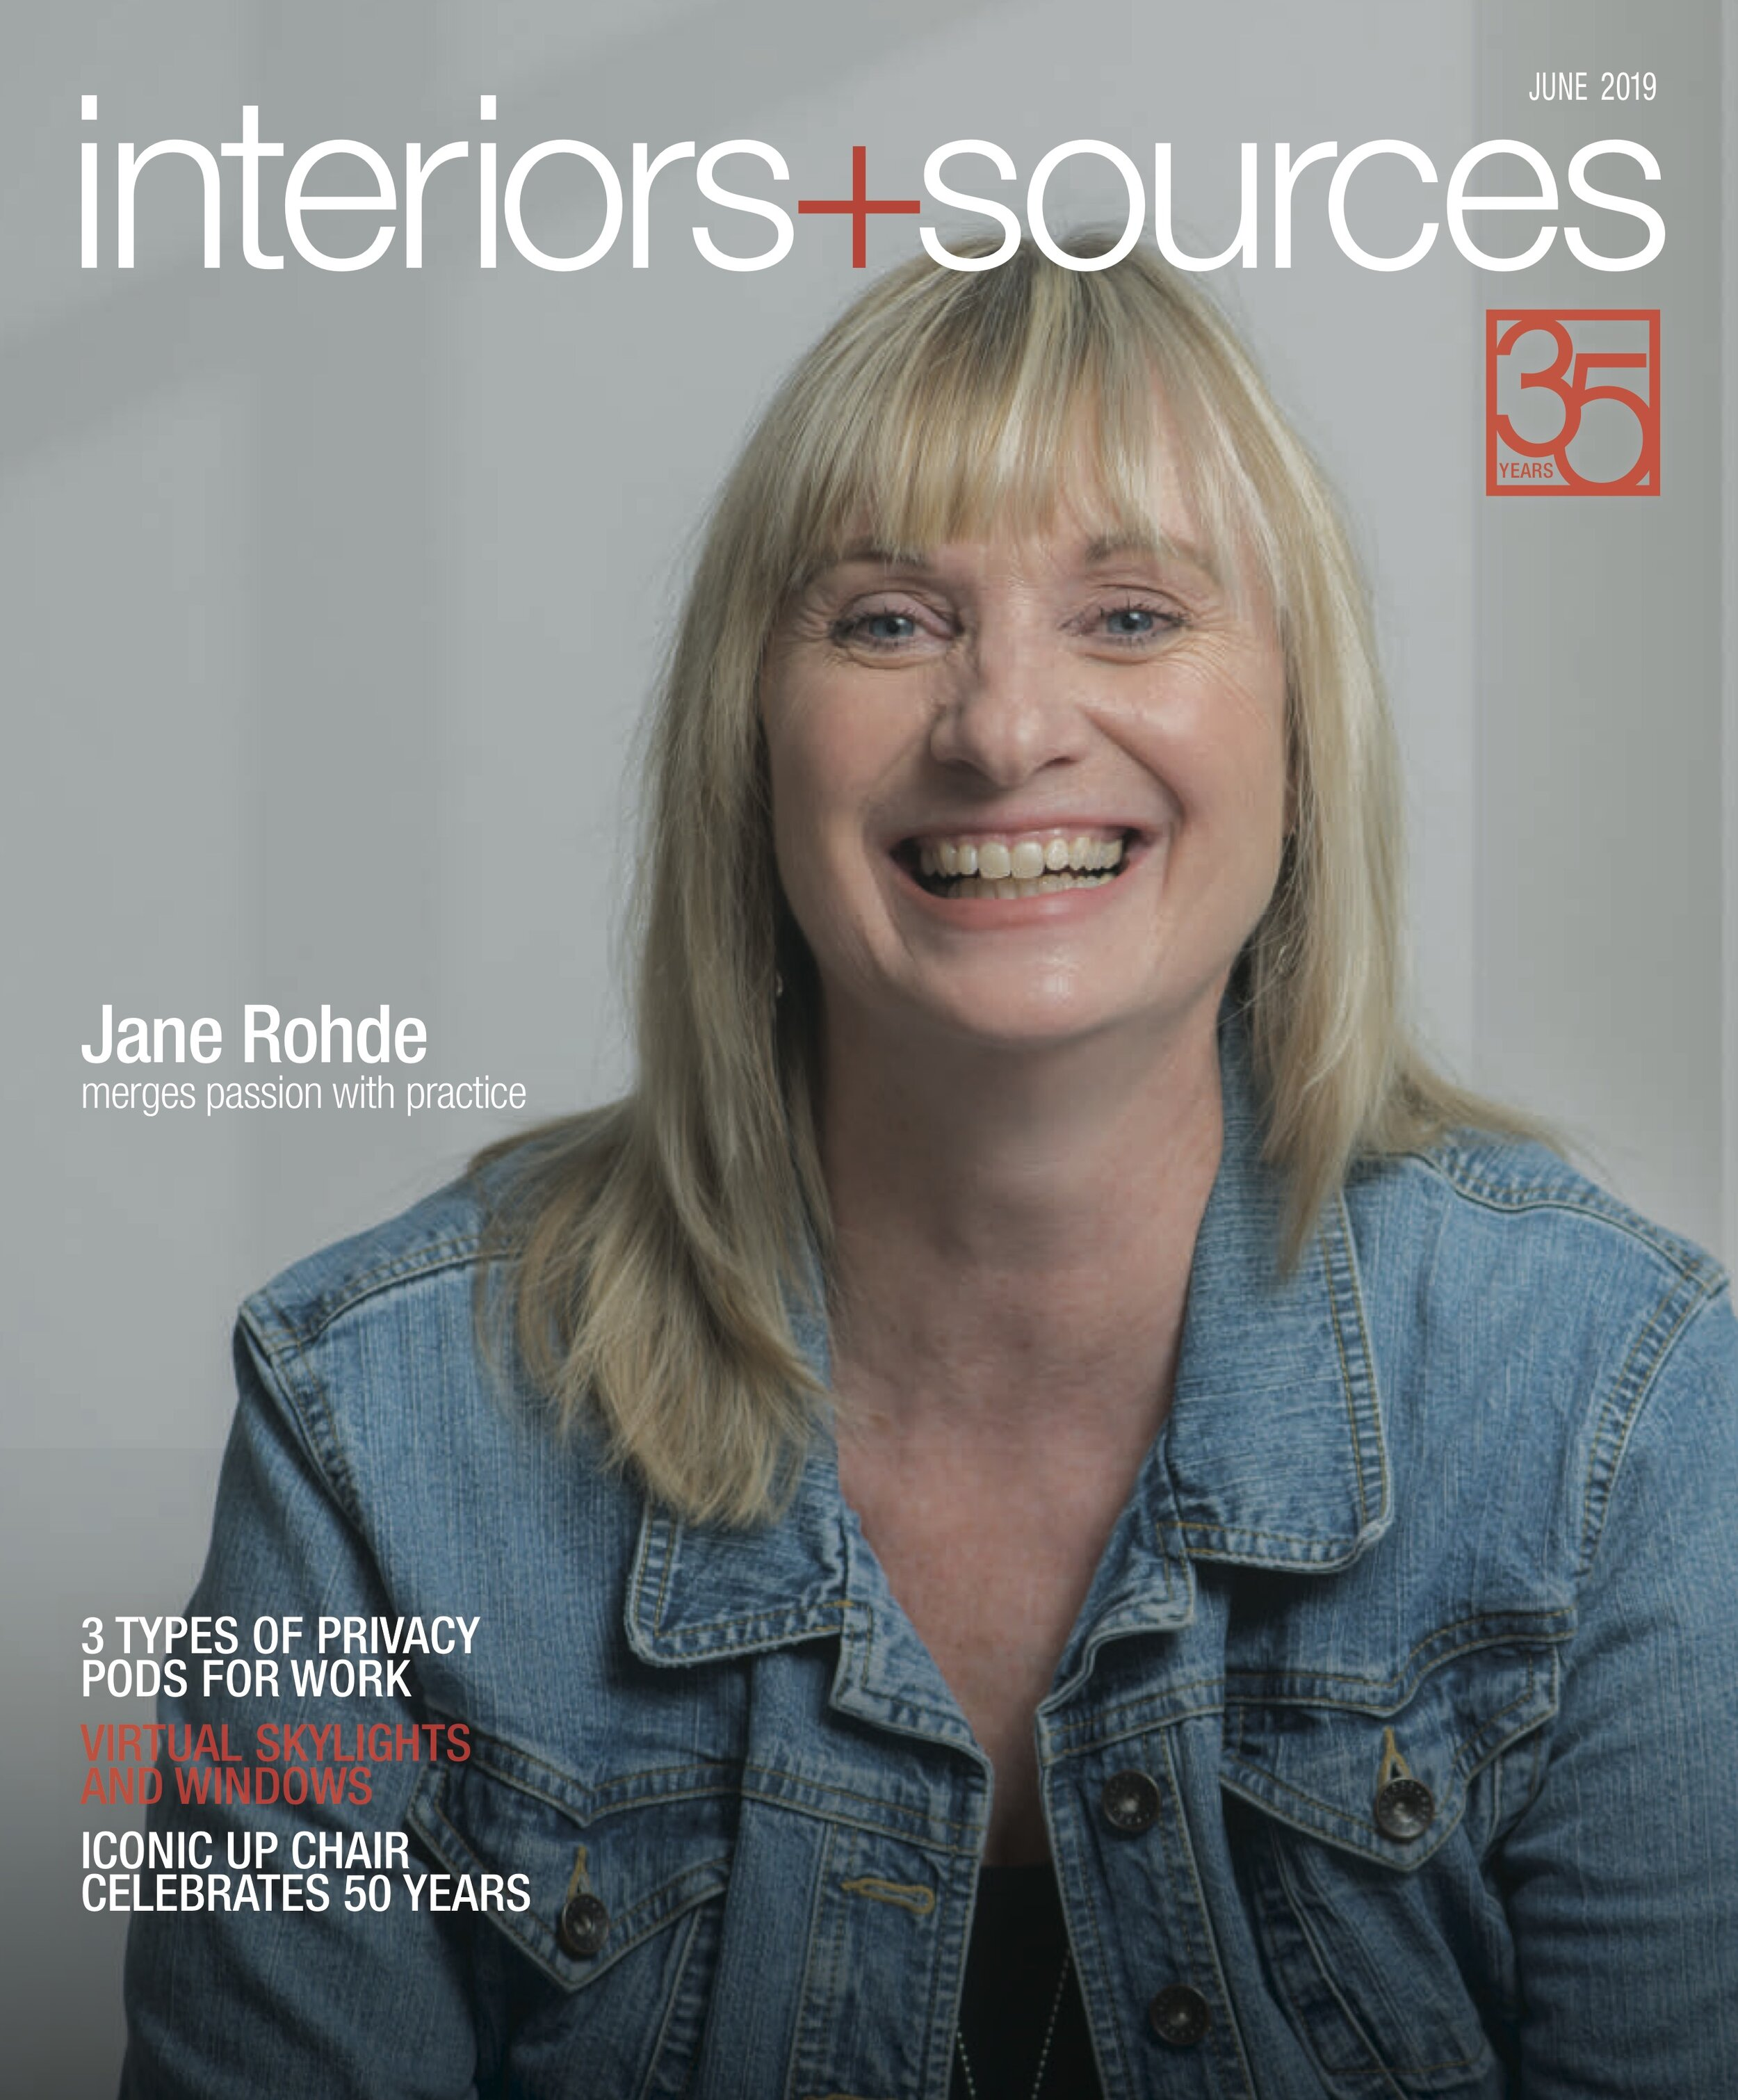 interiorsources_cover.jpg